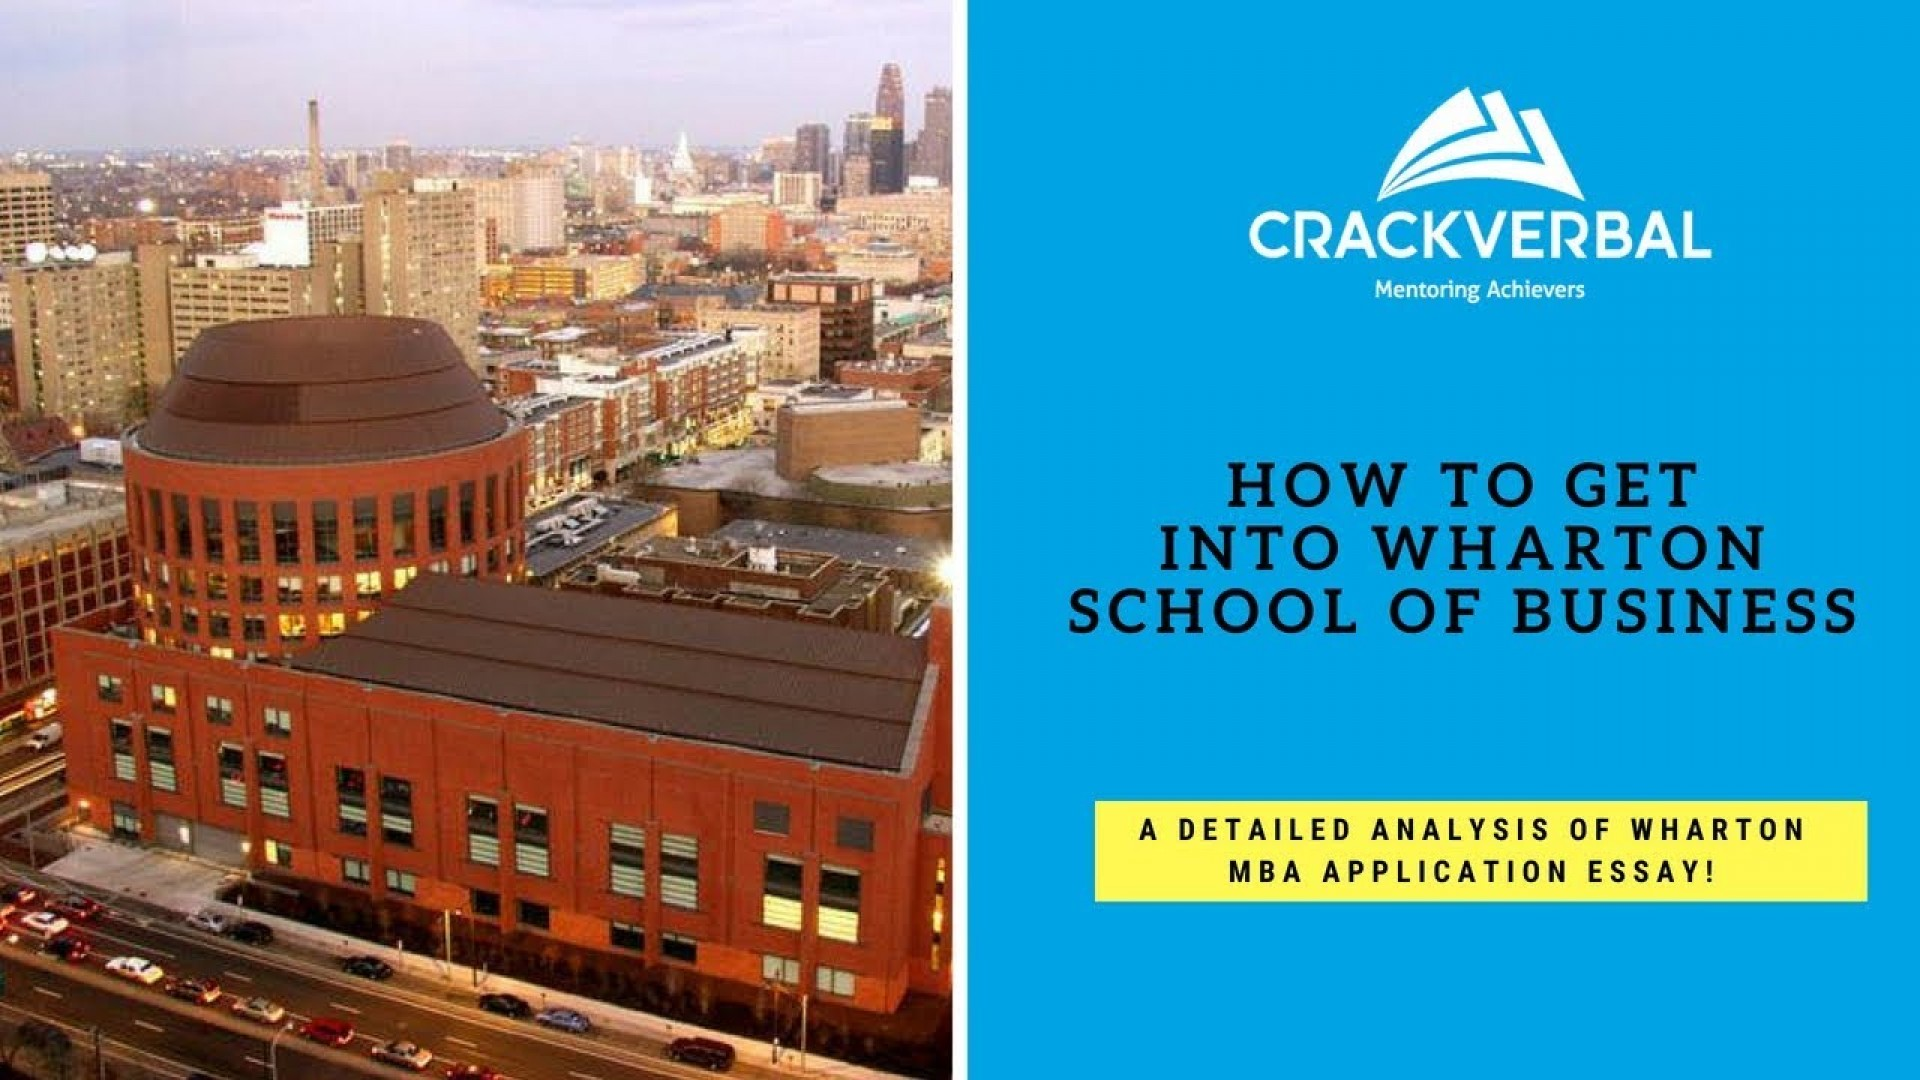 017 Maxresdefault Wharton Mba Essay Imposing Questions 2017 2019 Essays Examples 1920